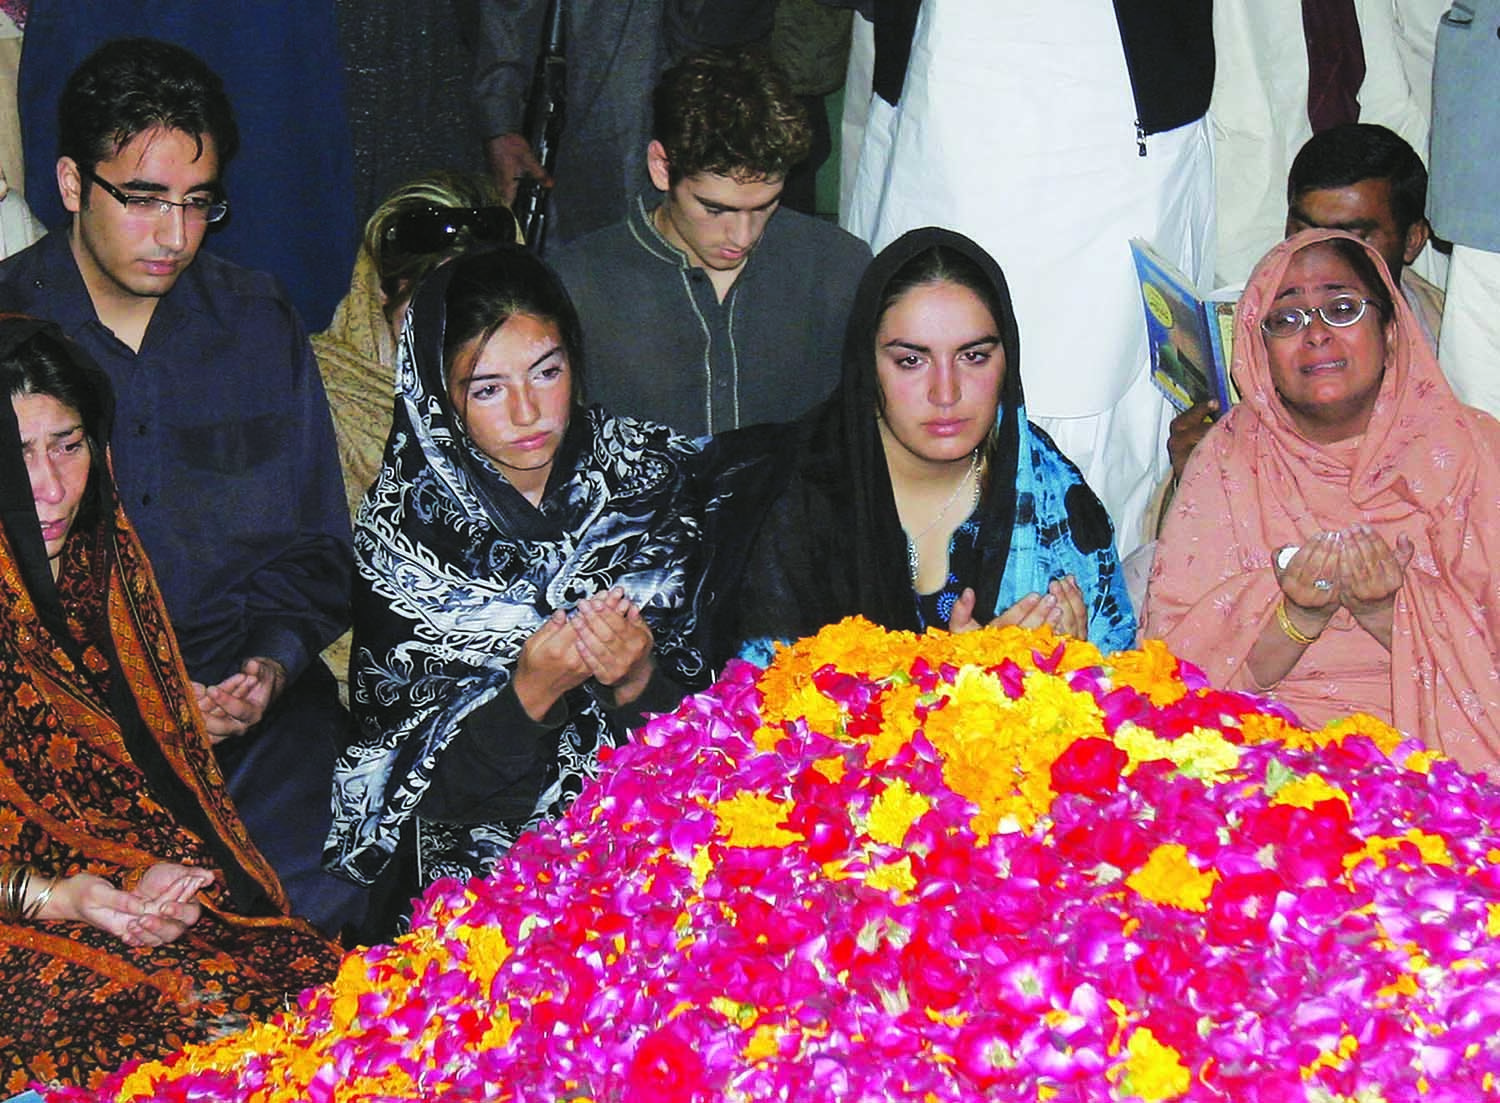 The assassination of Benazir Bhutto in Rawalpindi towards the end of 2007 led to a wave of sympathy for the party she used to lead – the Pakistan People's Party – and, subsequently, to Musharraf's ouster from the presidency. Bilawal Zardari (second from left), seen here grieving alongside sisters Asefa (centre) and Bakhtawar (second from right) at the gravesite of their mother in Garhi Khuda Bux, subsequently had to begin a life in politics, under the wings of father Asif Zardari, to take the Bhutto mantle forward. | Photo by Shakil Adil